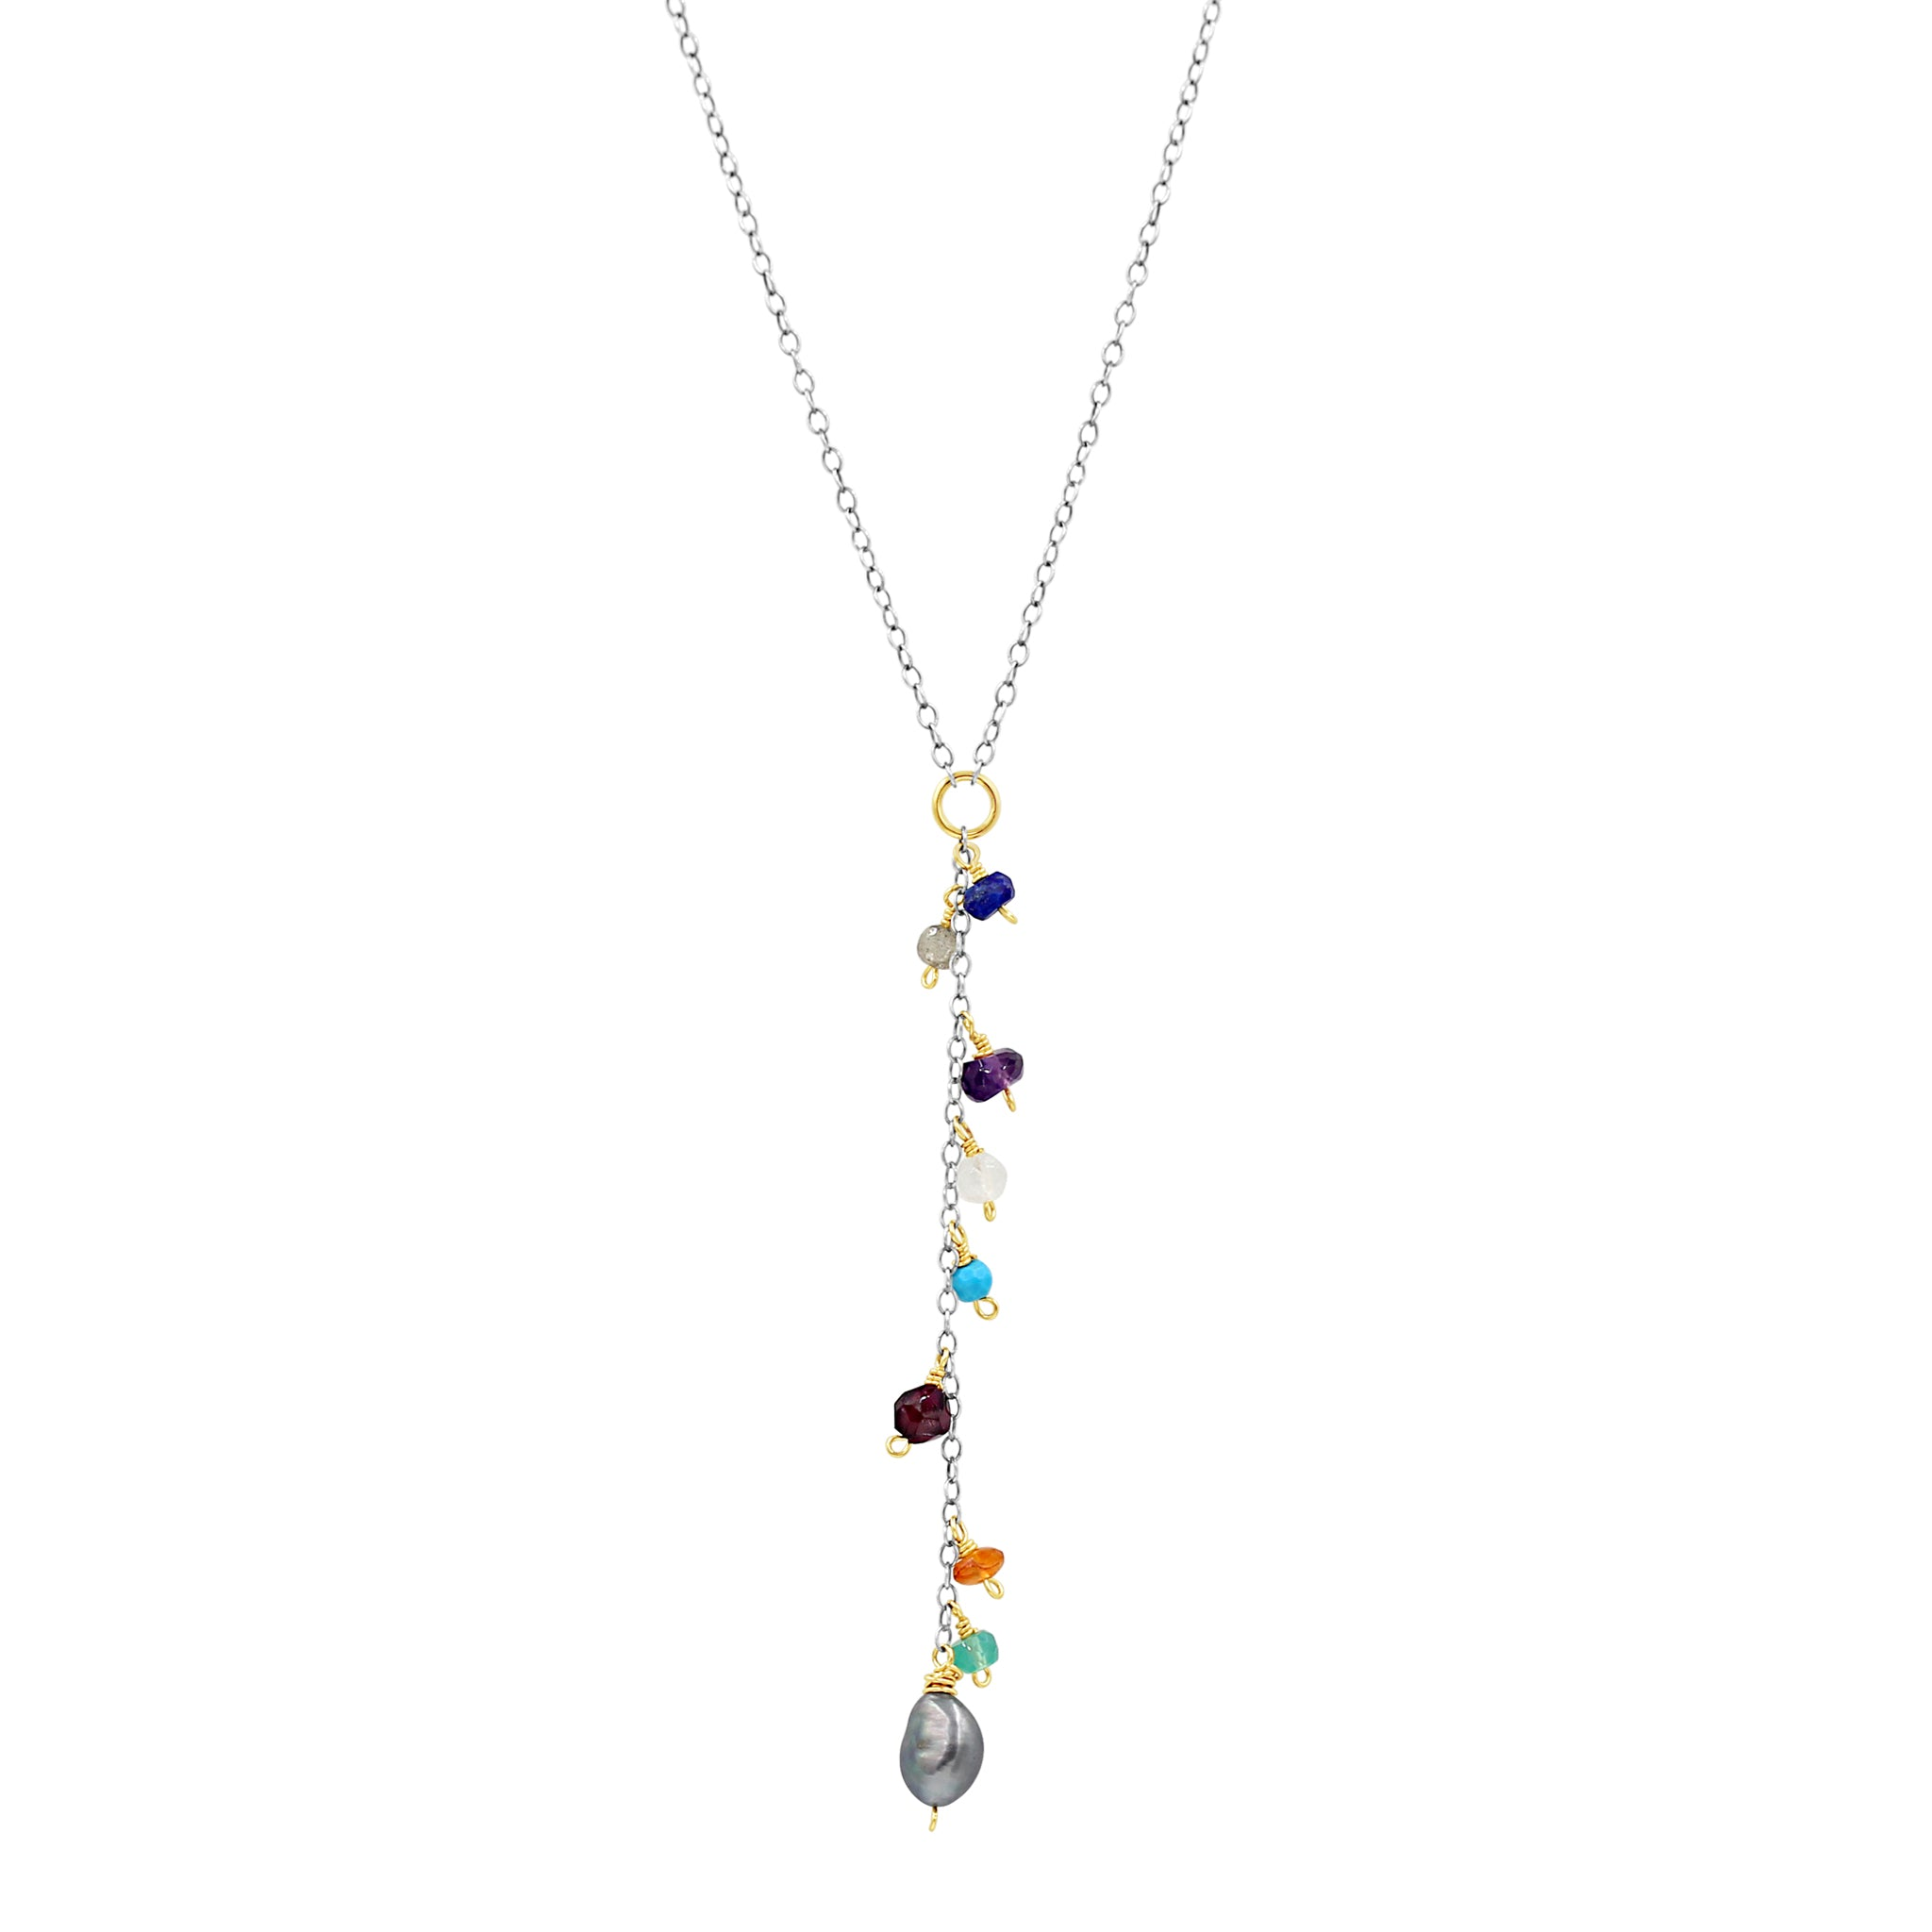 Everyday Happiness Multi Color Gem Necklace - Sati Gems Hawaii Healing Crystal Gemstone Jewelry